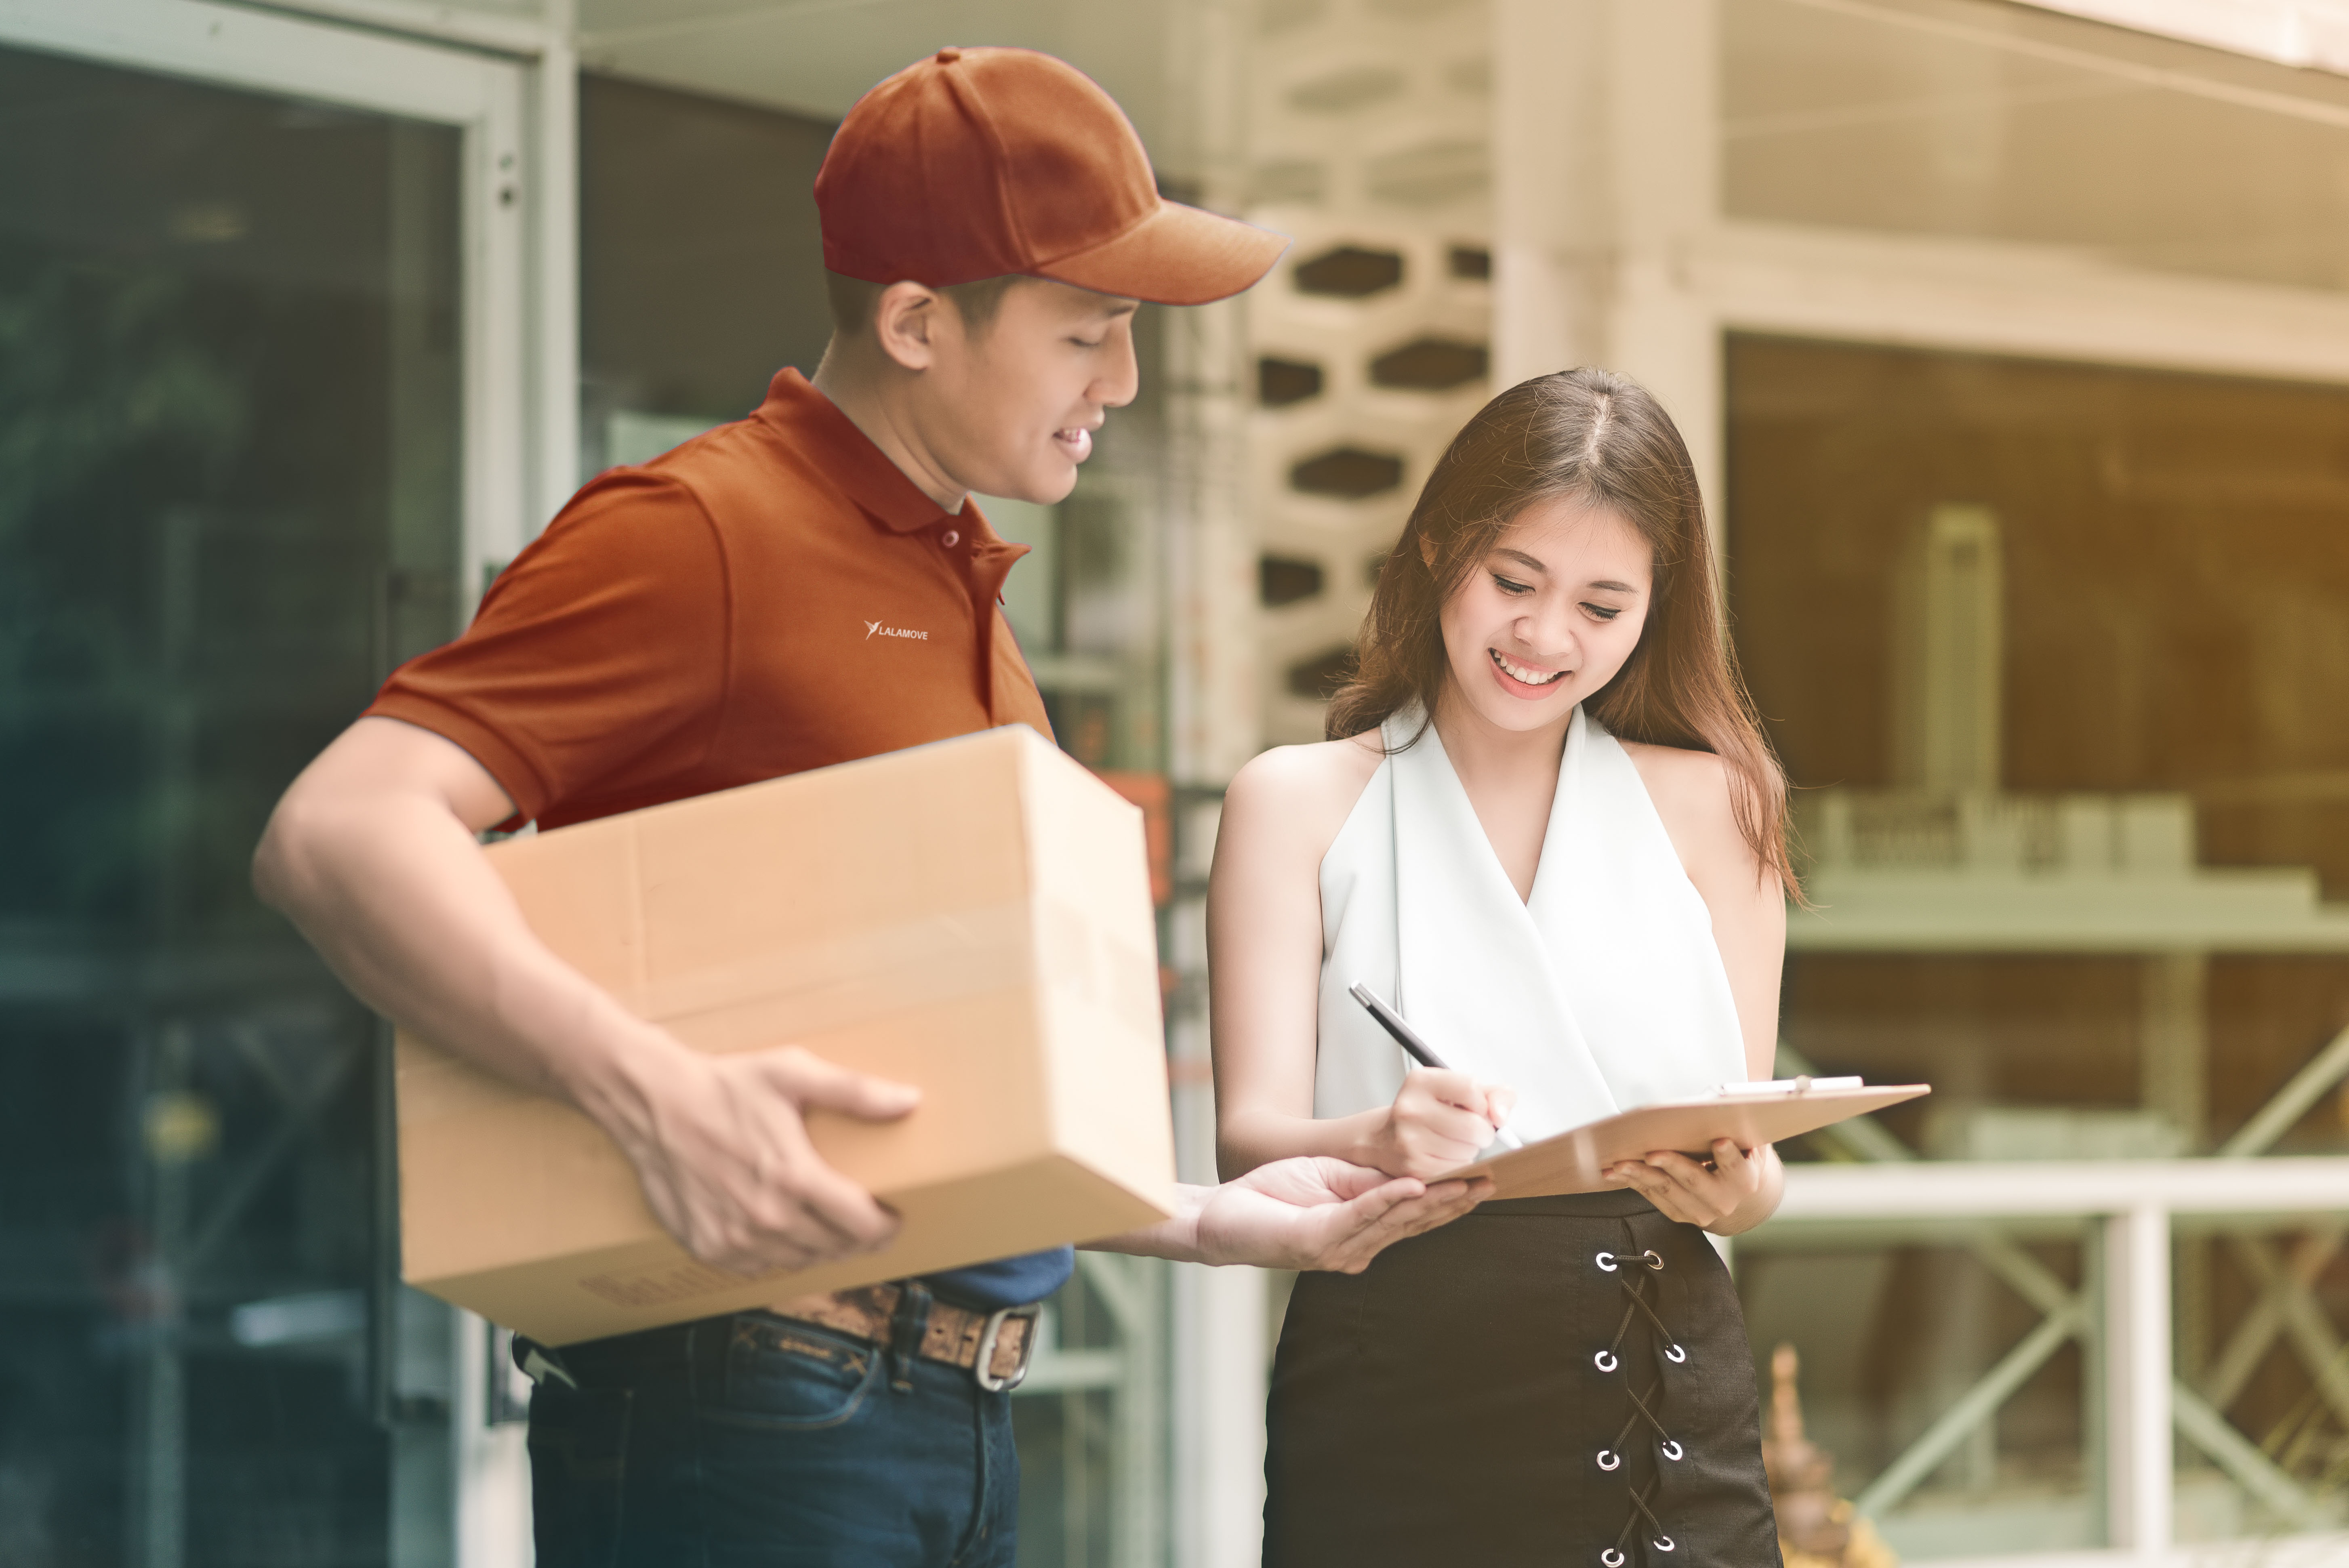 What is last mile delivery and how does Lalamove fit in